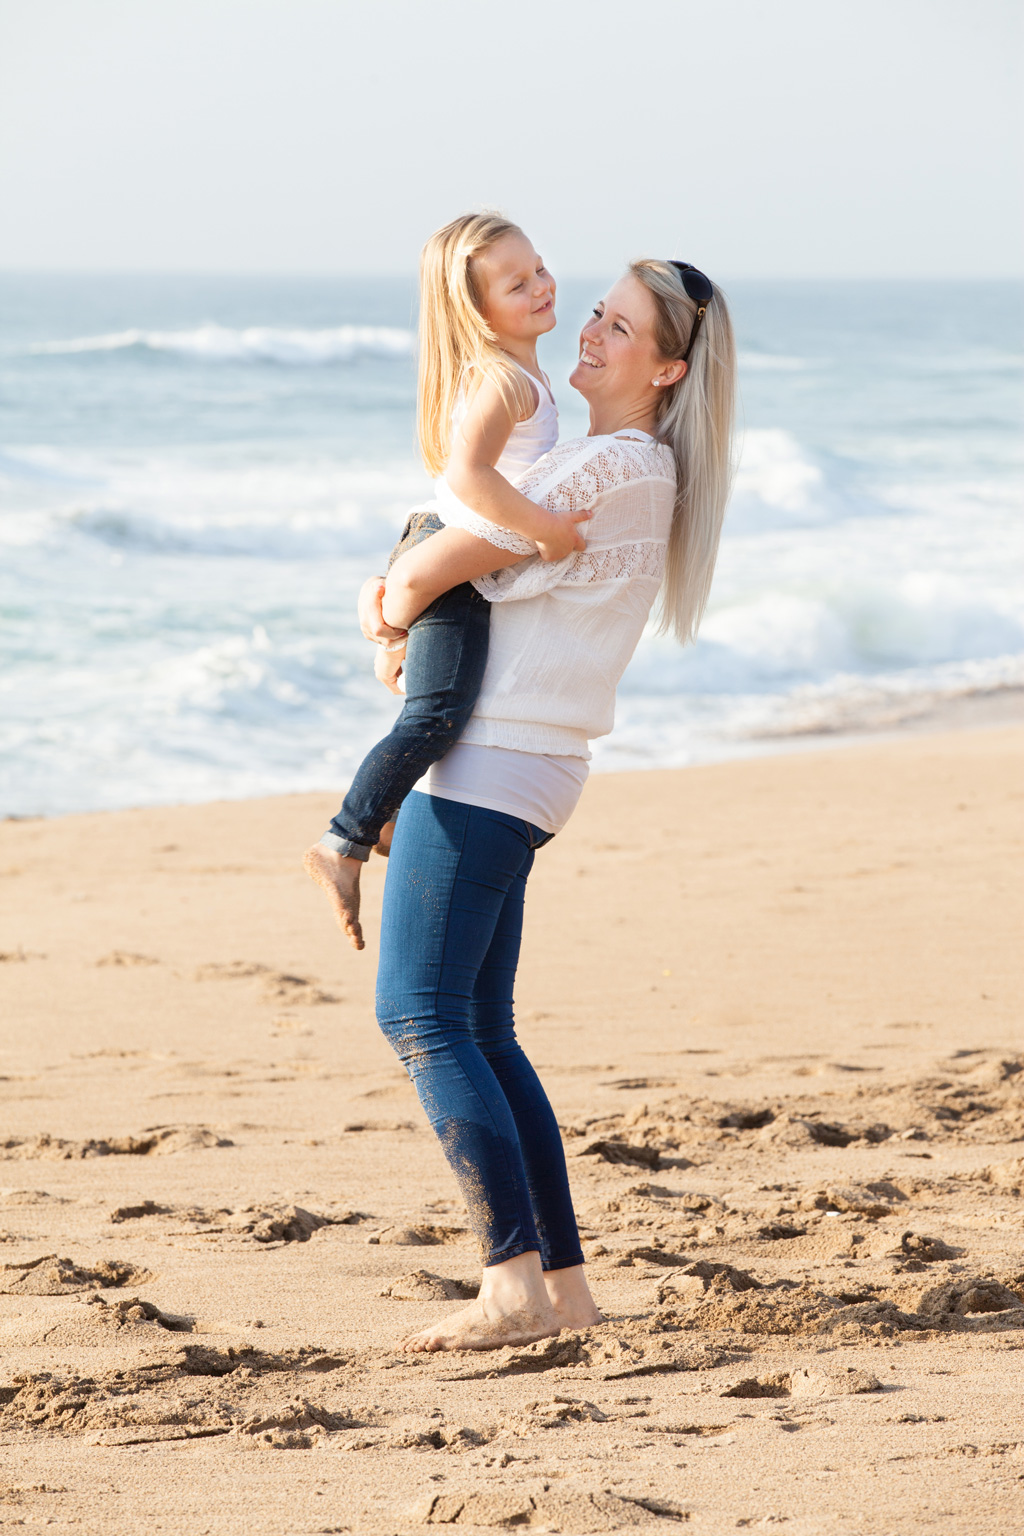 Family Photographer Durban: Nicole & Jono's Family Beach Shoot